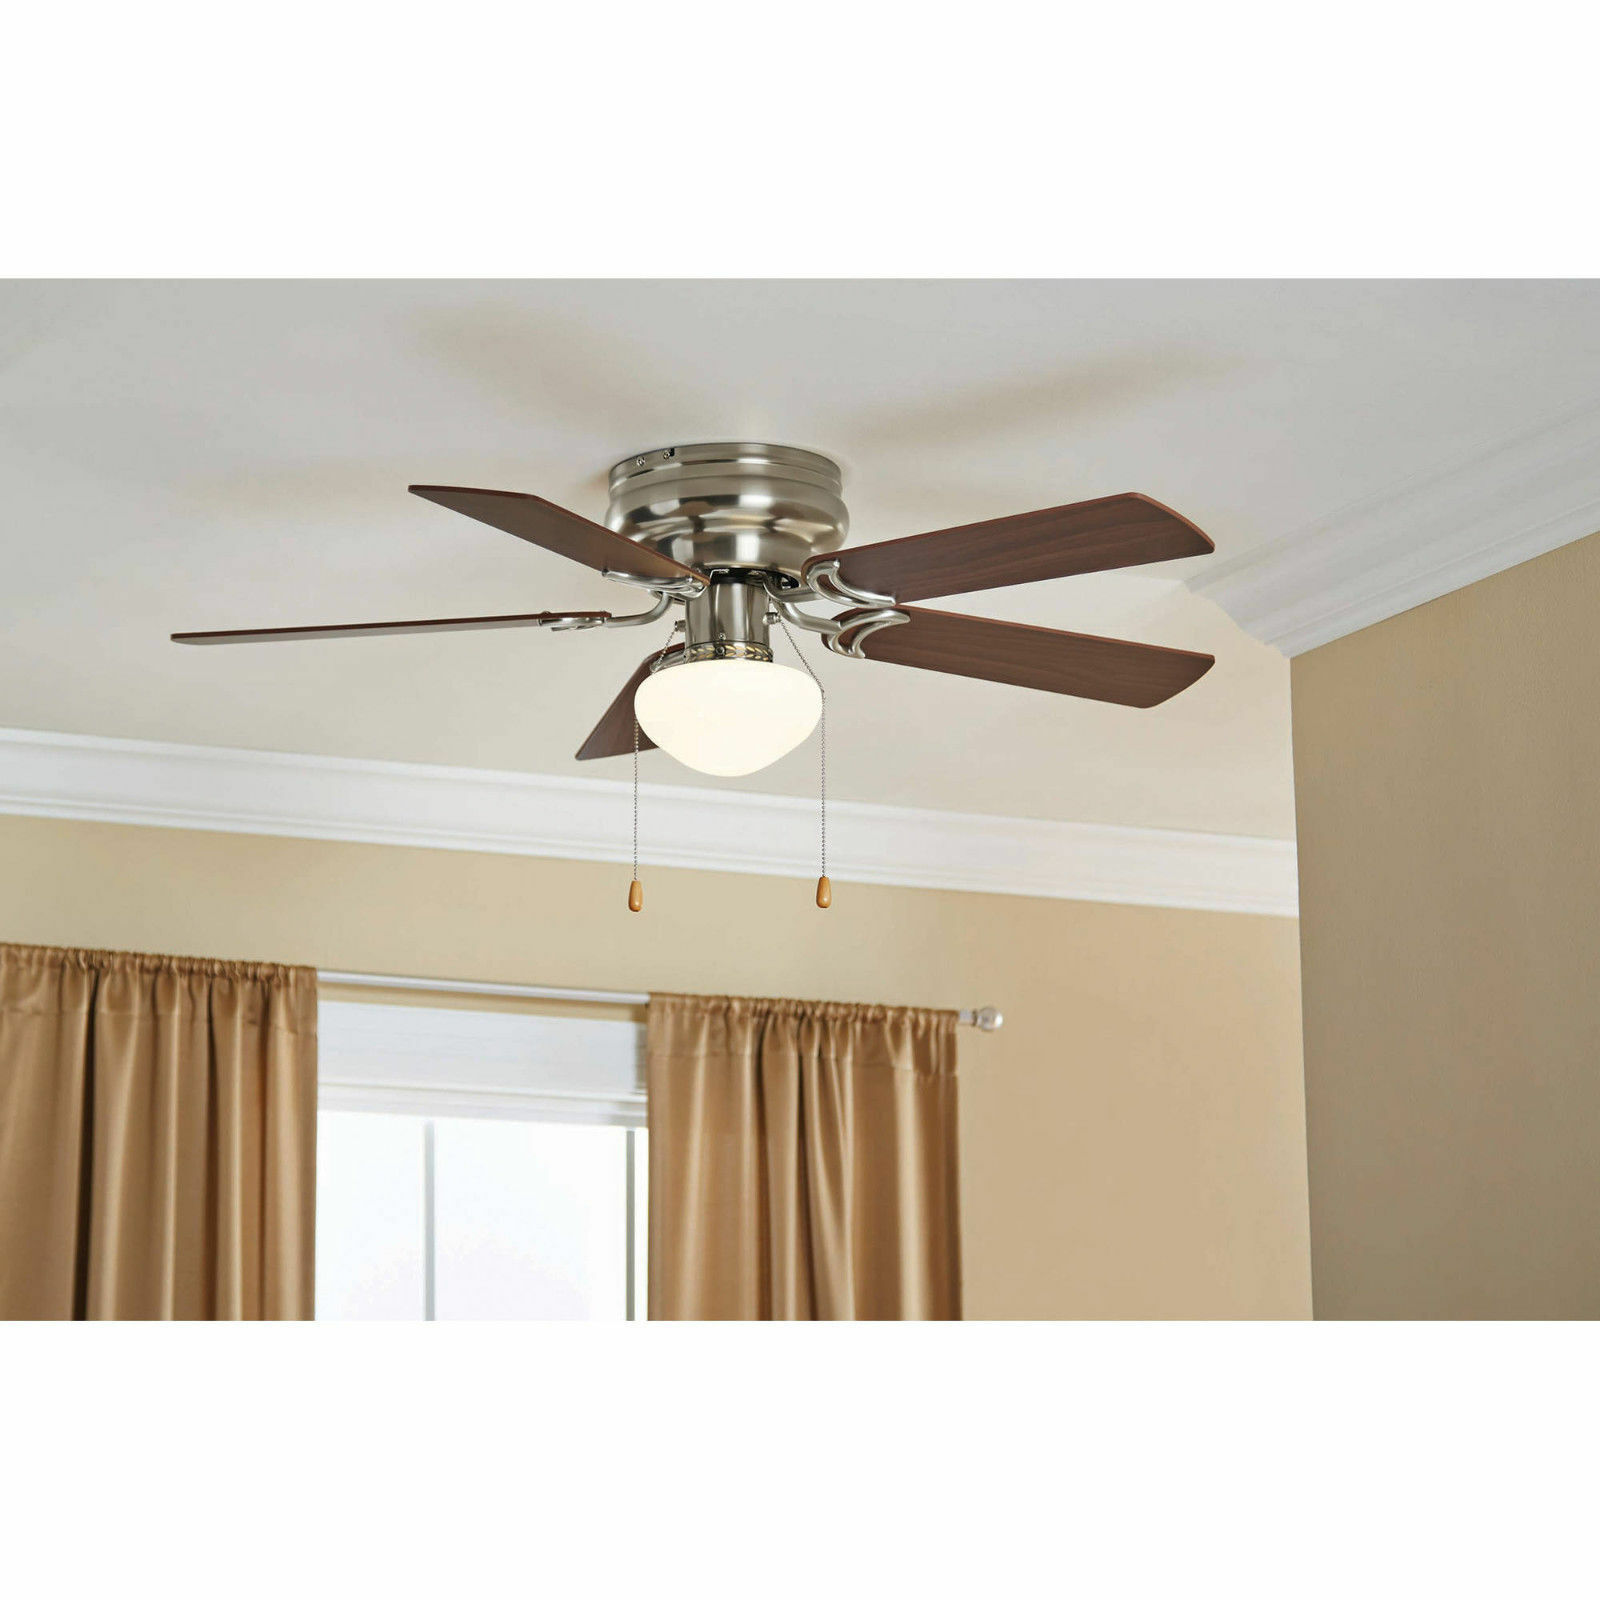 Hampton Bay Hugger 52 Inch Brushed Nickel Ceiling Fan Light